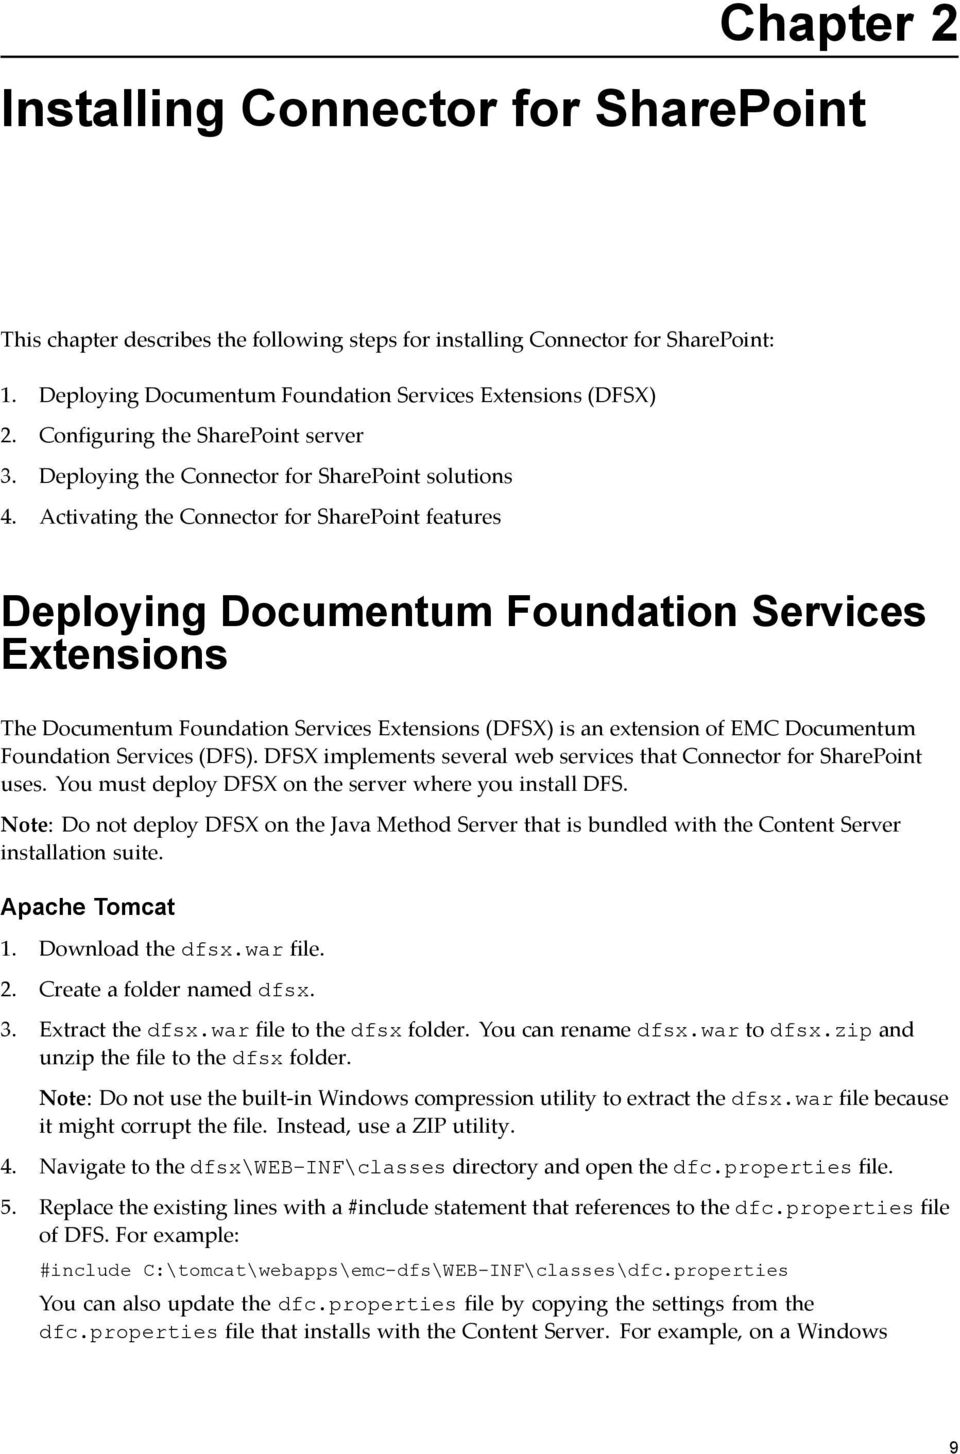 EMC Documentum Connector for Microsoft SharePoint - PDF